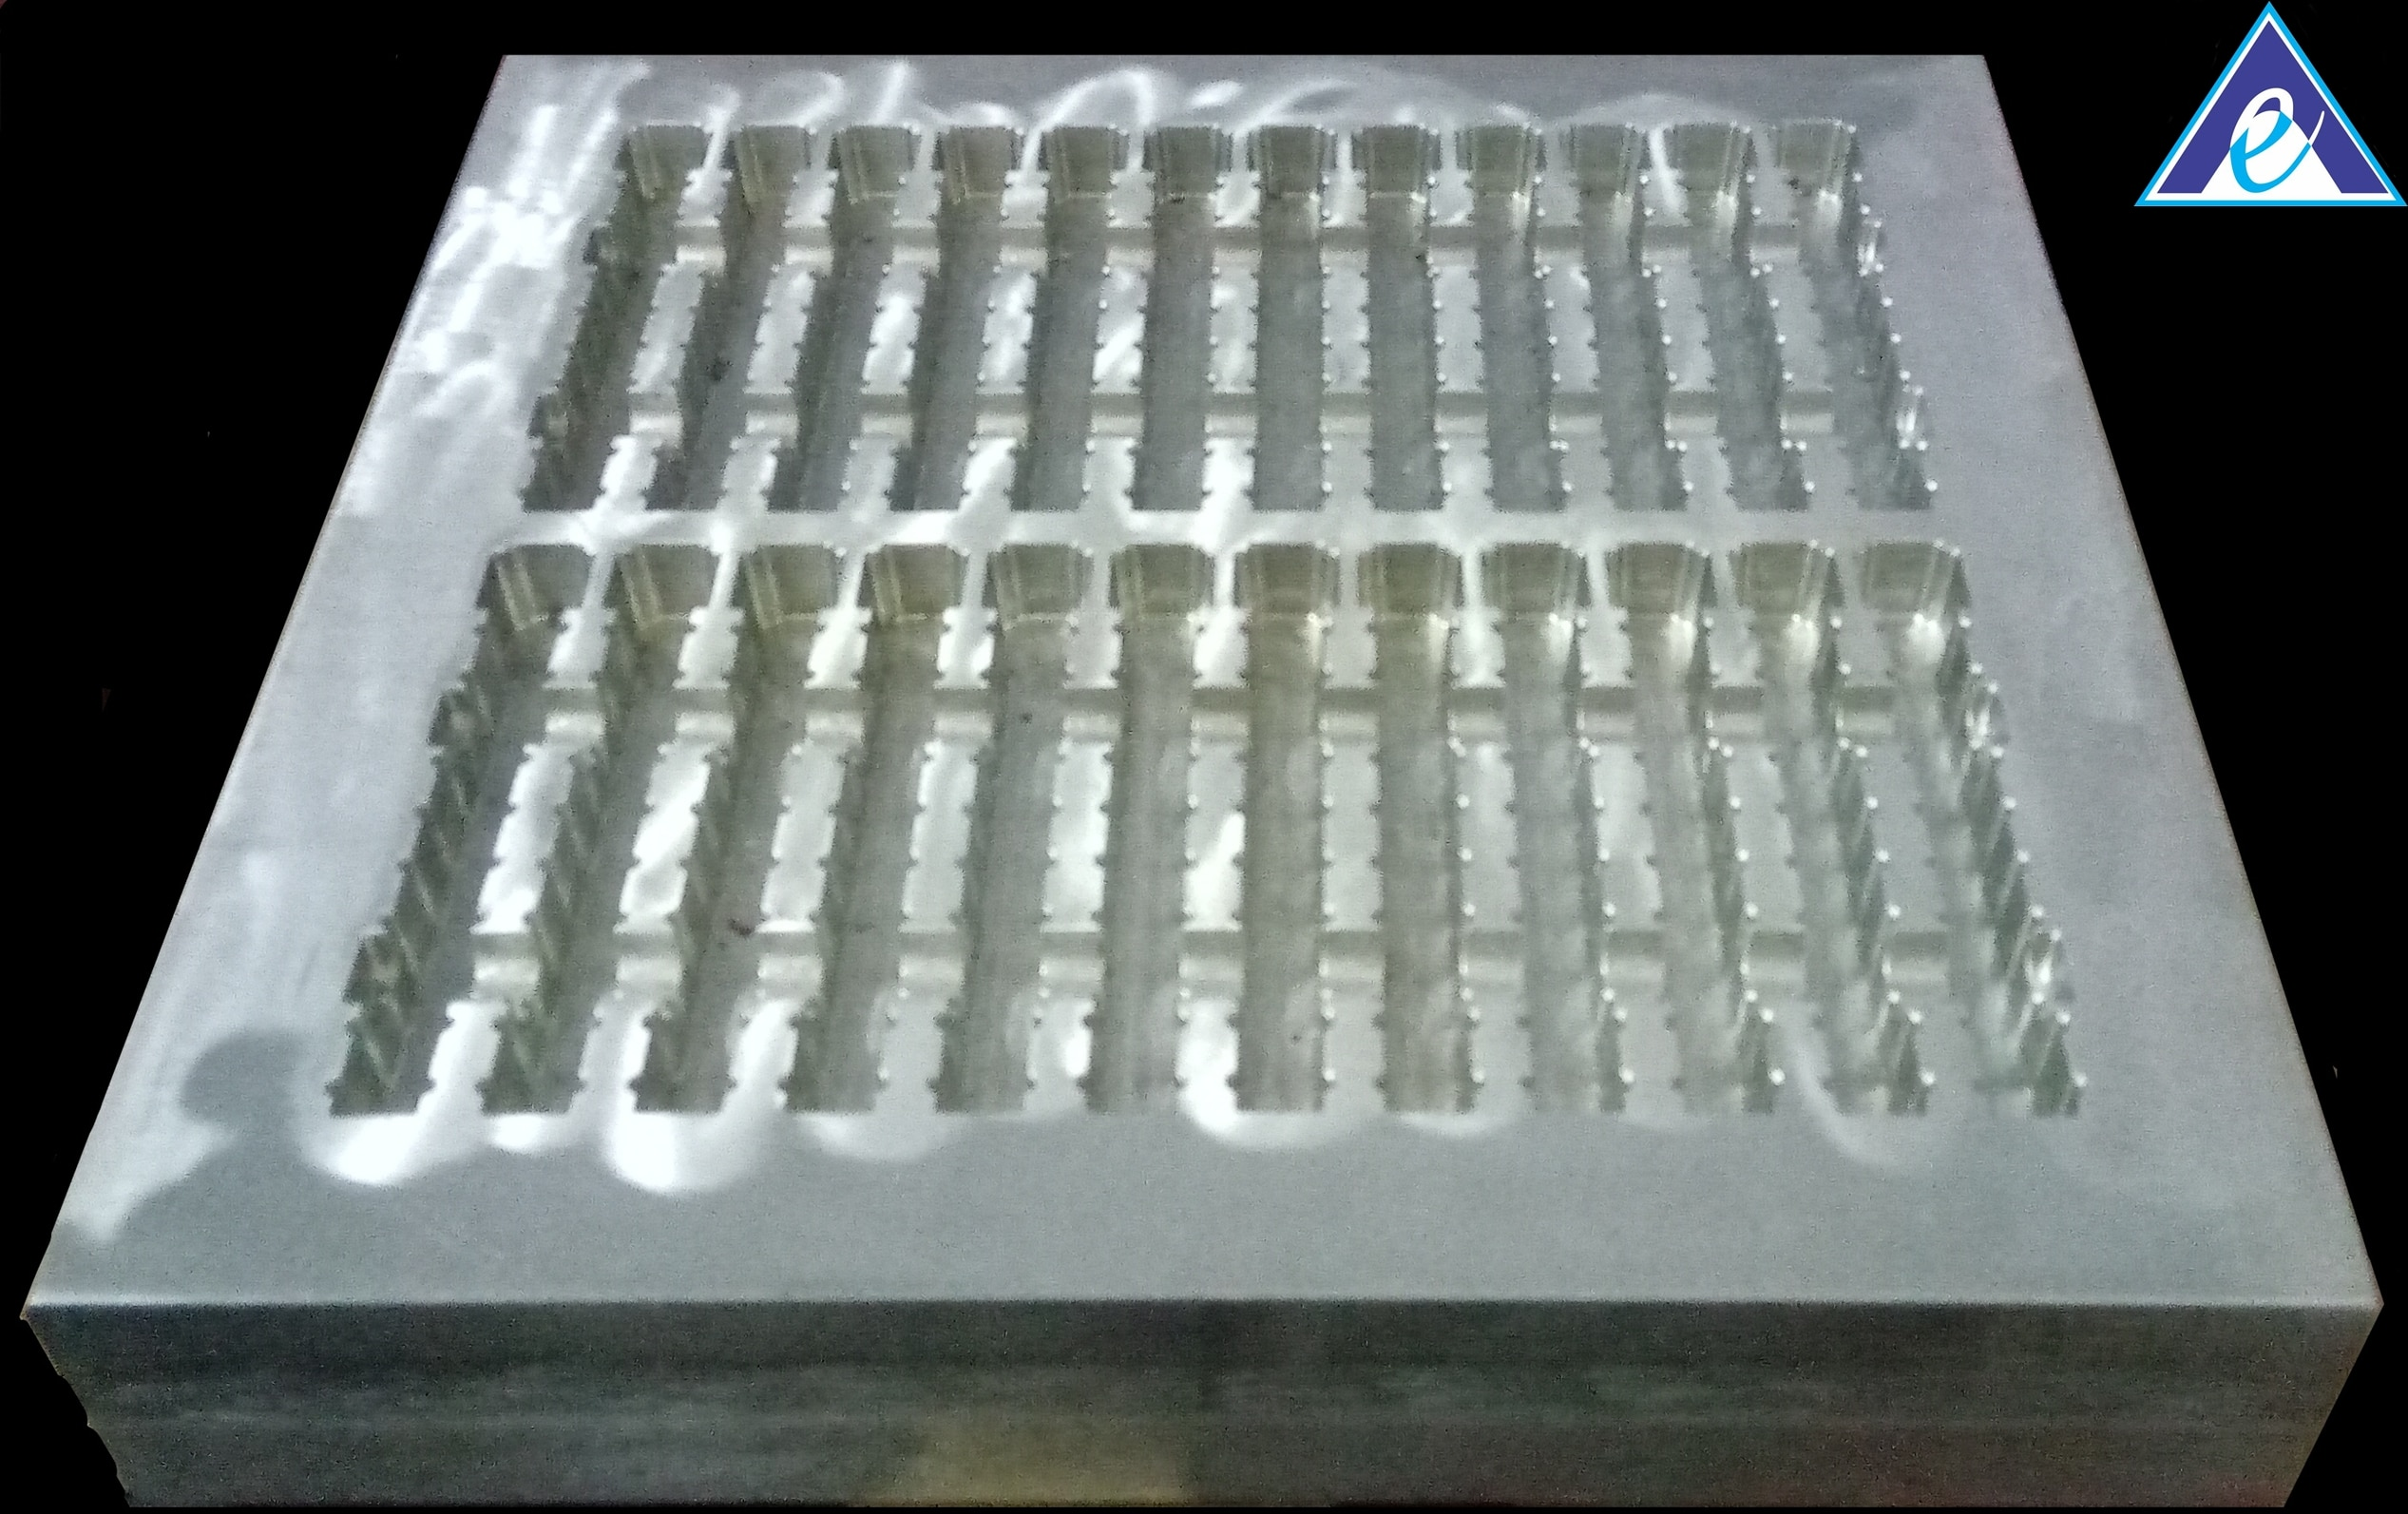 PRODUCT : SHAFT TRAY MOLD/MOULD (Industrial Transport Tray Mold/Mould) FOR : Industrial Tool Transport  FORM : Mold/Mould MATERIAL : Aluminium CAVITY : 24 (12*2)  PROCESS : Vacuum Forming  * Vacuum Forming is the simplified version of Thermoforming. * In this type of process, a sheet of plastic is heated to a forming temperature, stretched onto a single surface mold/mould, and forced against the mold/mould by a vacuum. * Forms plastic into a permanent object. * Then trimmed to create a usable product. * Ability to make 1000 parts per hour (based on the efficiency of the machine and mold/mould size).  * This SHAFT TRAY MOLD/MOULD (Industrial Transport Tray Mold/Mould) is designed and developed to make the packaging for Industrial Tool Transport. * There are nothing but the pack made of regular plastic of light weight which can carry heavy loads for industrial use. * This type is developed to carry heavy loads of multi-numbered in a single rack.  * Ability Engineering Private Limited, works and easyfies our customers job by manufacturing above their satisfaction point. * Our moto is to manufacture with high precision level in the given mean time at affordable cost.  CONTACT : Santhosh K Chandrasekaran [ +919940206164 ] Nithin [ +919790819084 ]  PROFILE : Vacuum Forming Mold/Mould Manufacturer and Thermoforming Mold/Mould Manufacturer.  PLACE : Chennai, Tamil Nadu, India.